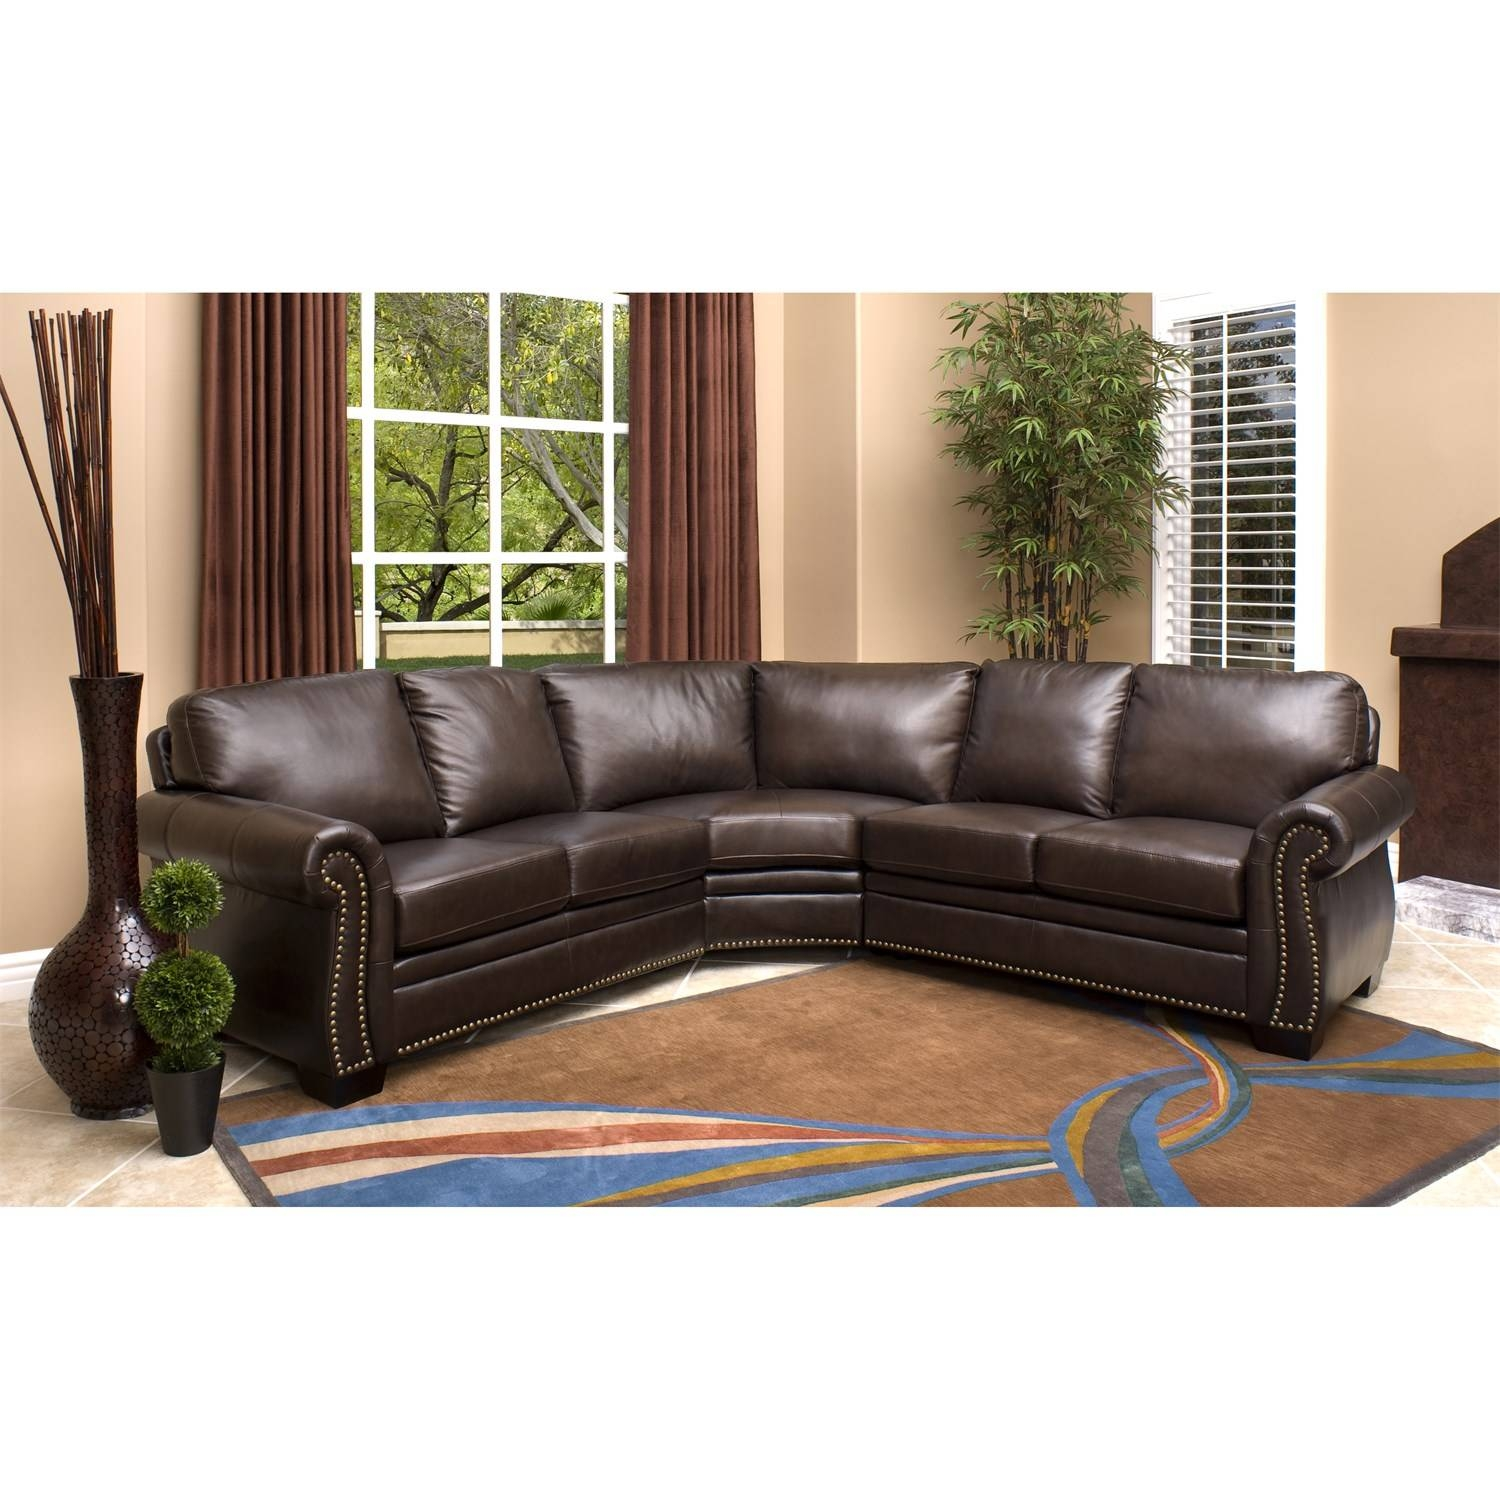 Abbyson Living Ci-N410-Brn Oxford Italian Leather Sectional Sofa within Abbyson Sectional Sofa (Image 5 of 30)